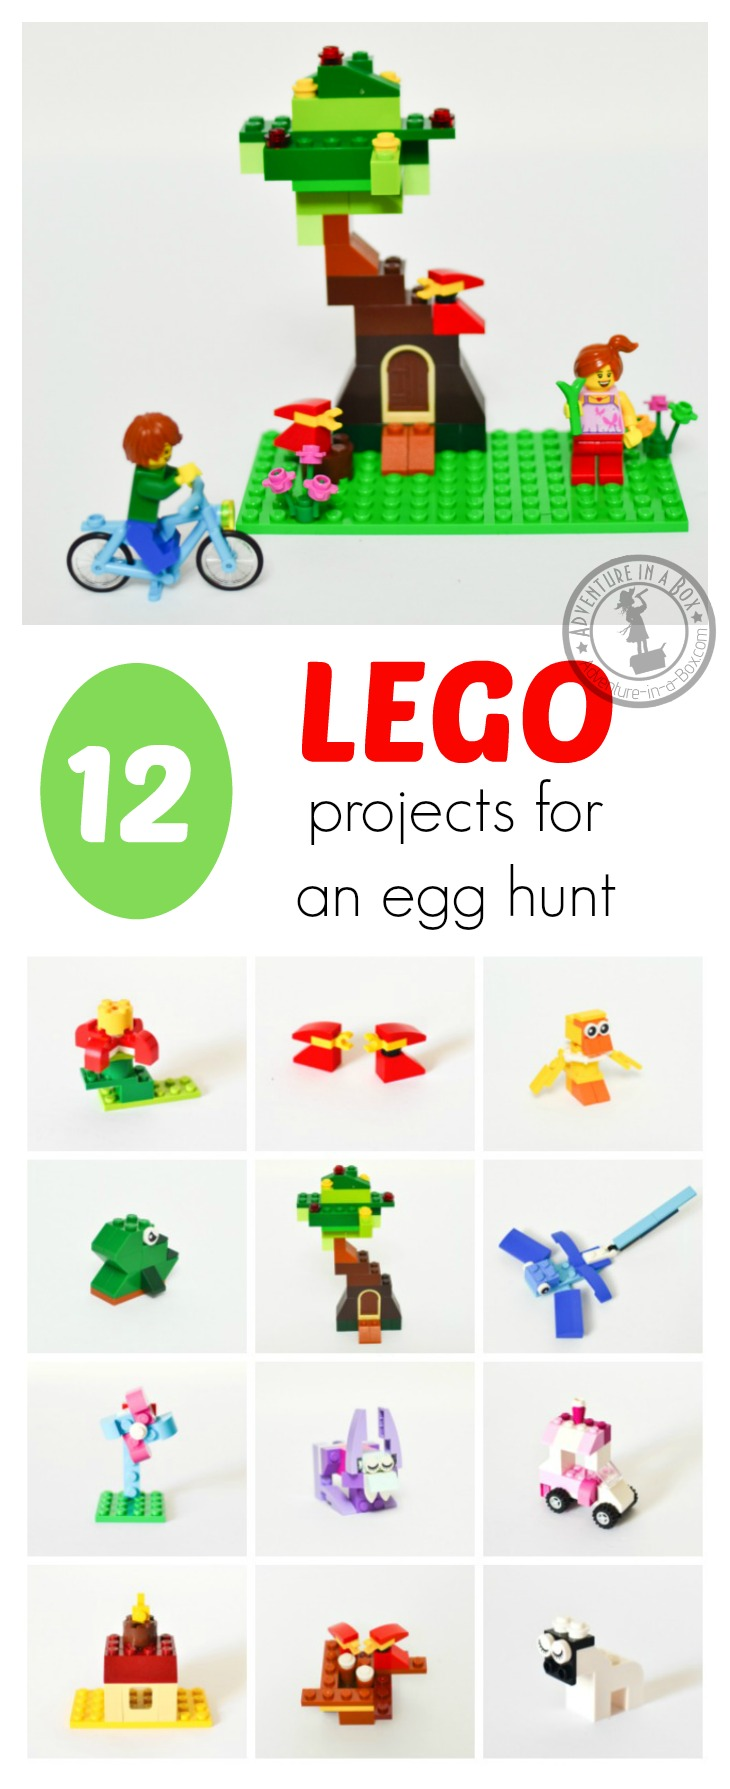 12 Small Spring Lego Projects: A delightful alternative to candies in filling Easter eggs and baskets for an Easter hunt! Free printable instructions are included.